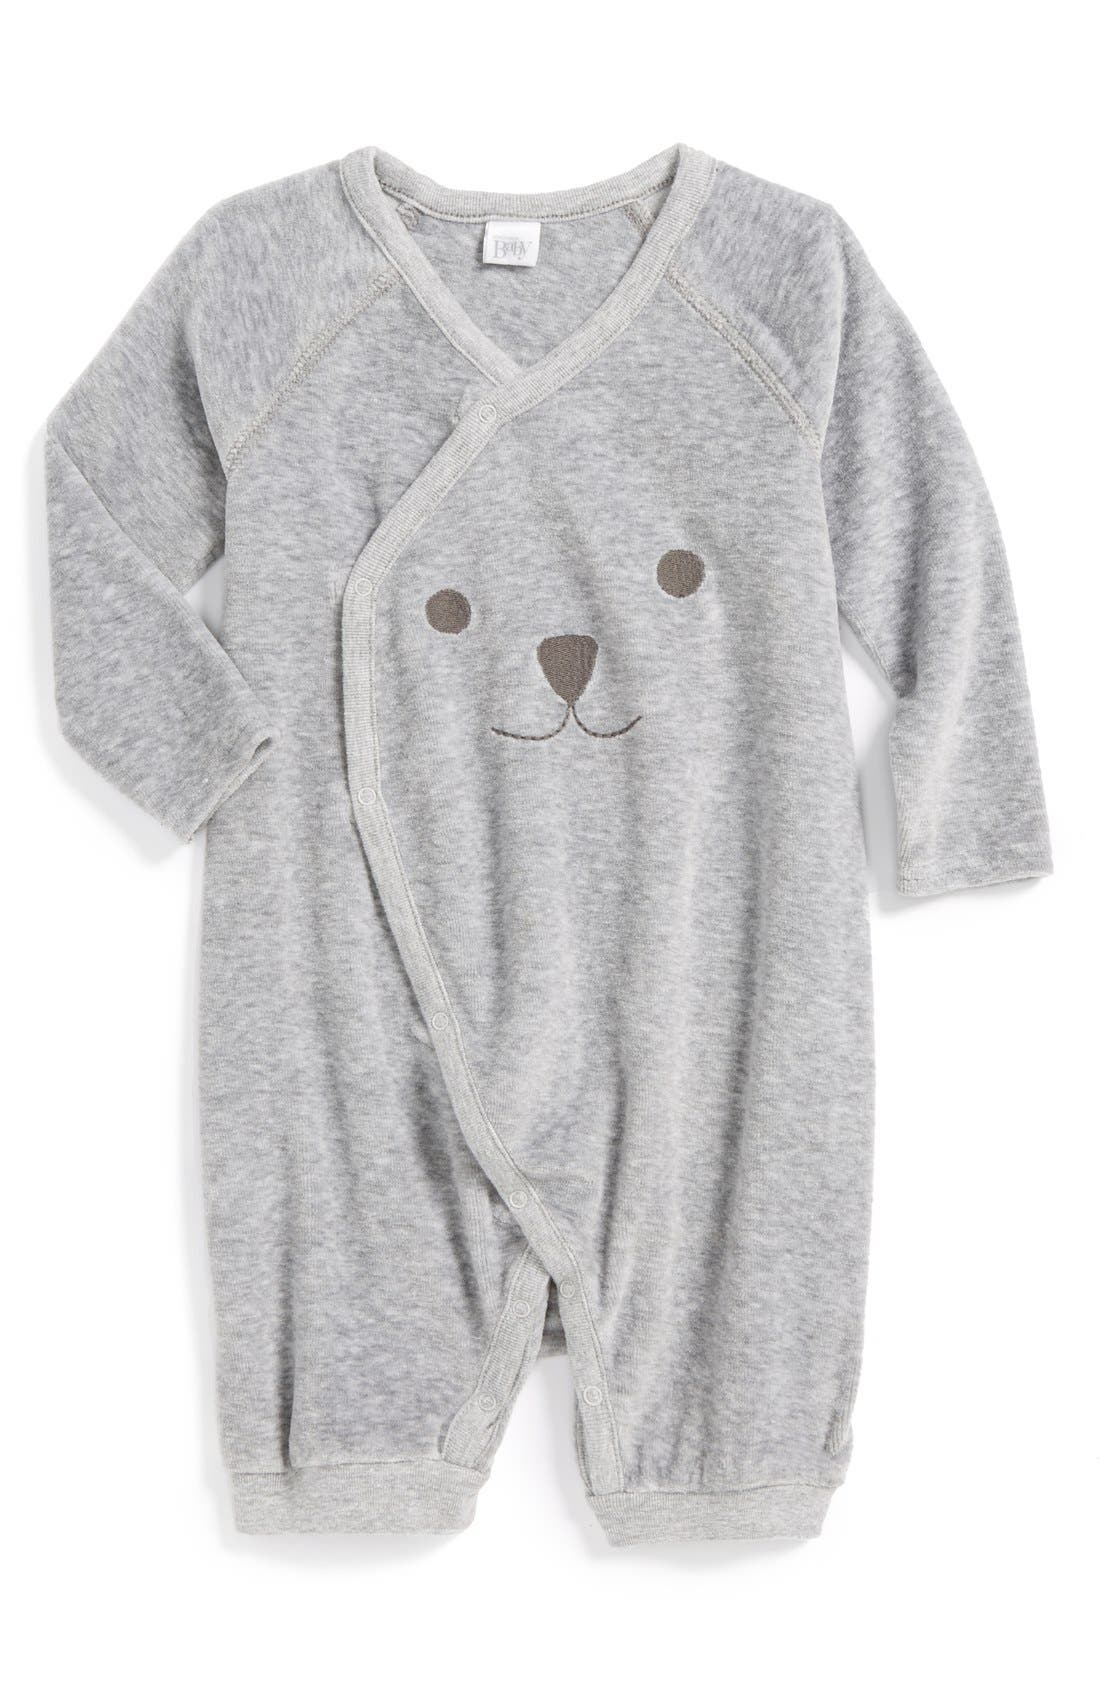 Main Image - Nordstrom Baby Velour Wrap Romper (Baby) (Nordstrom Exclusive)